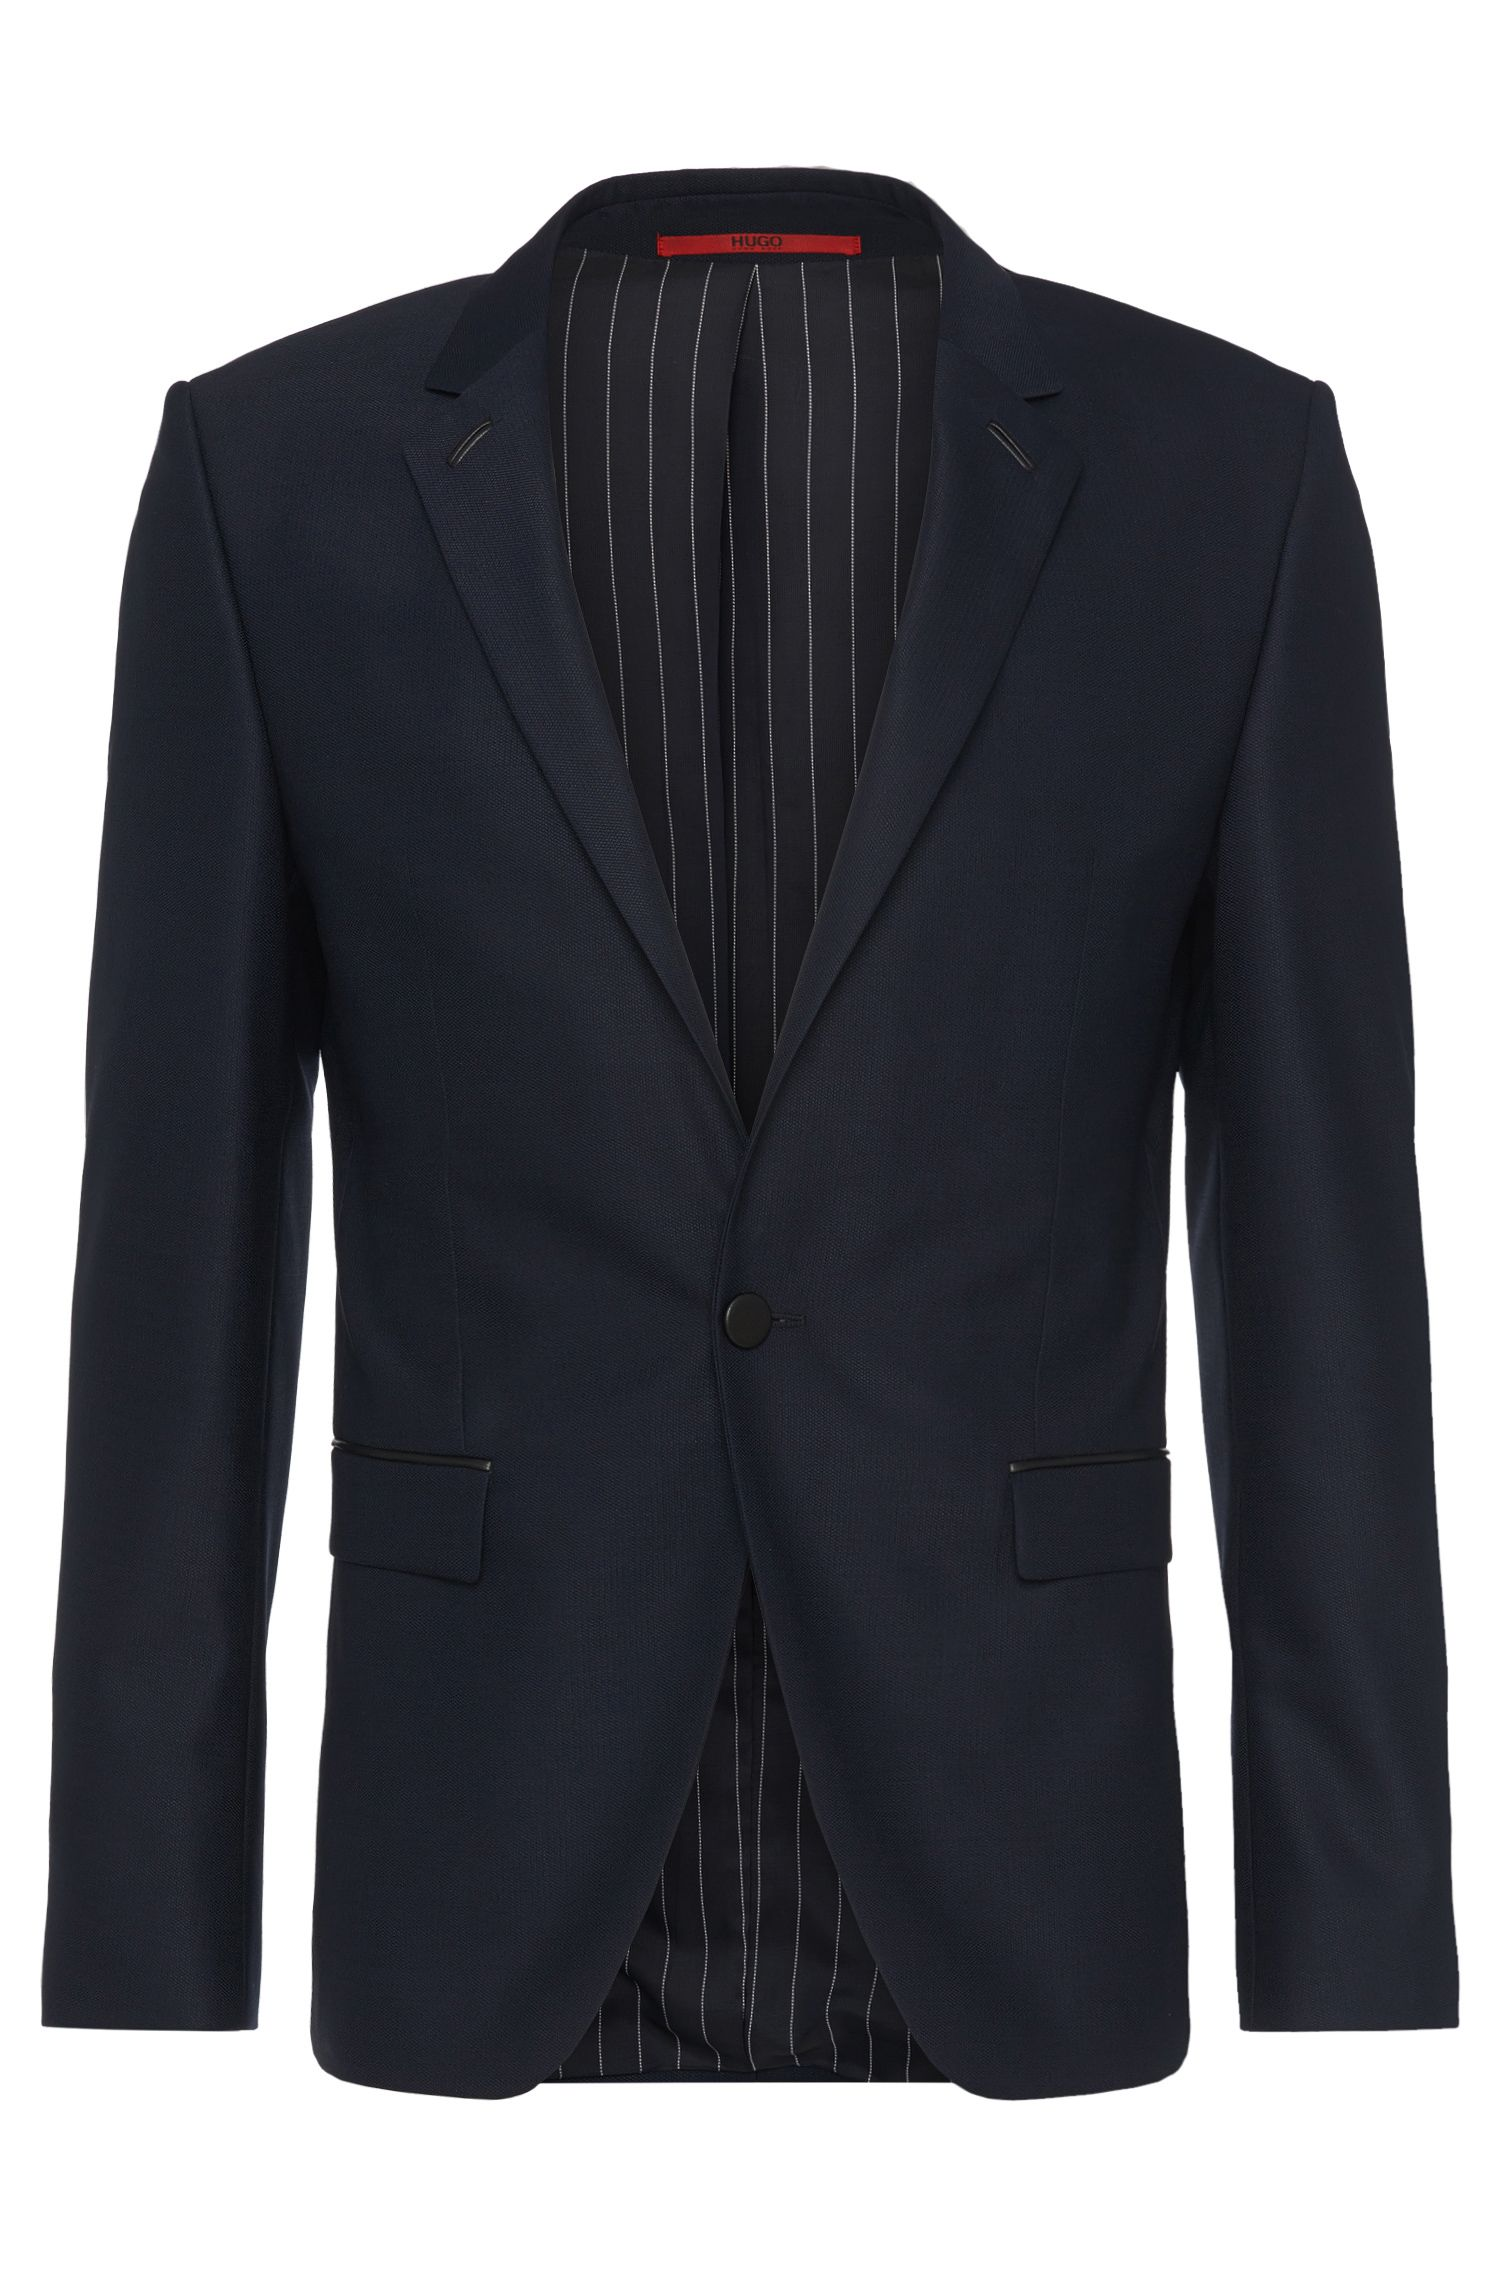 Extra-slim-fit jacket in fabric blend with wool: 'Arenz'